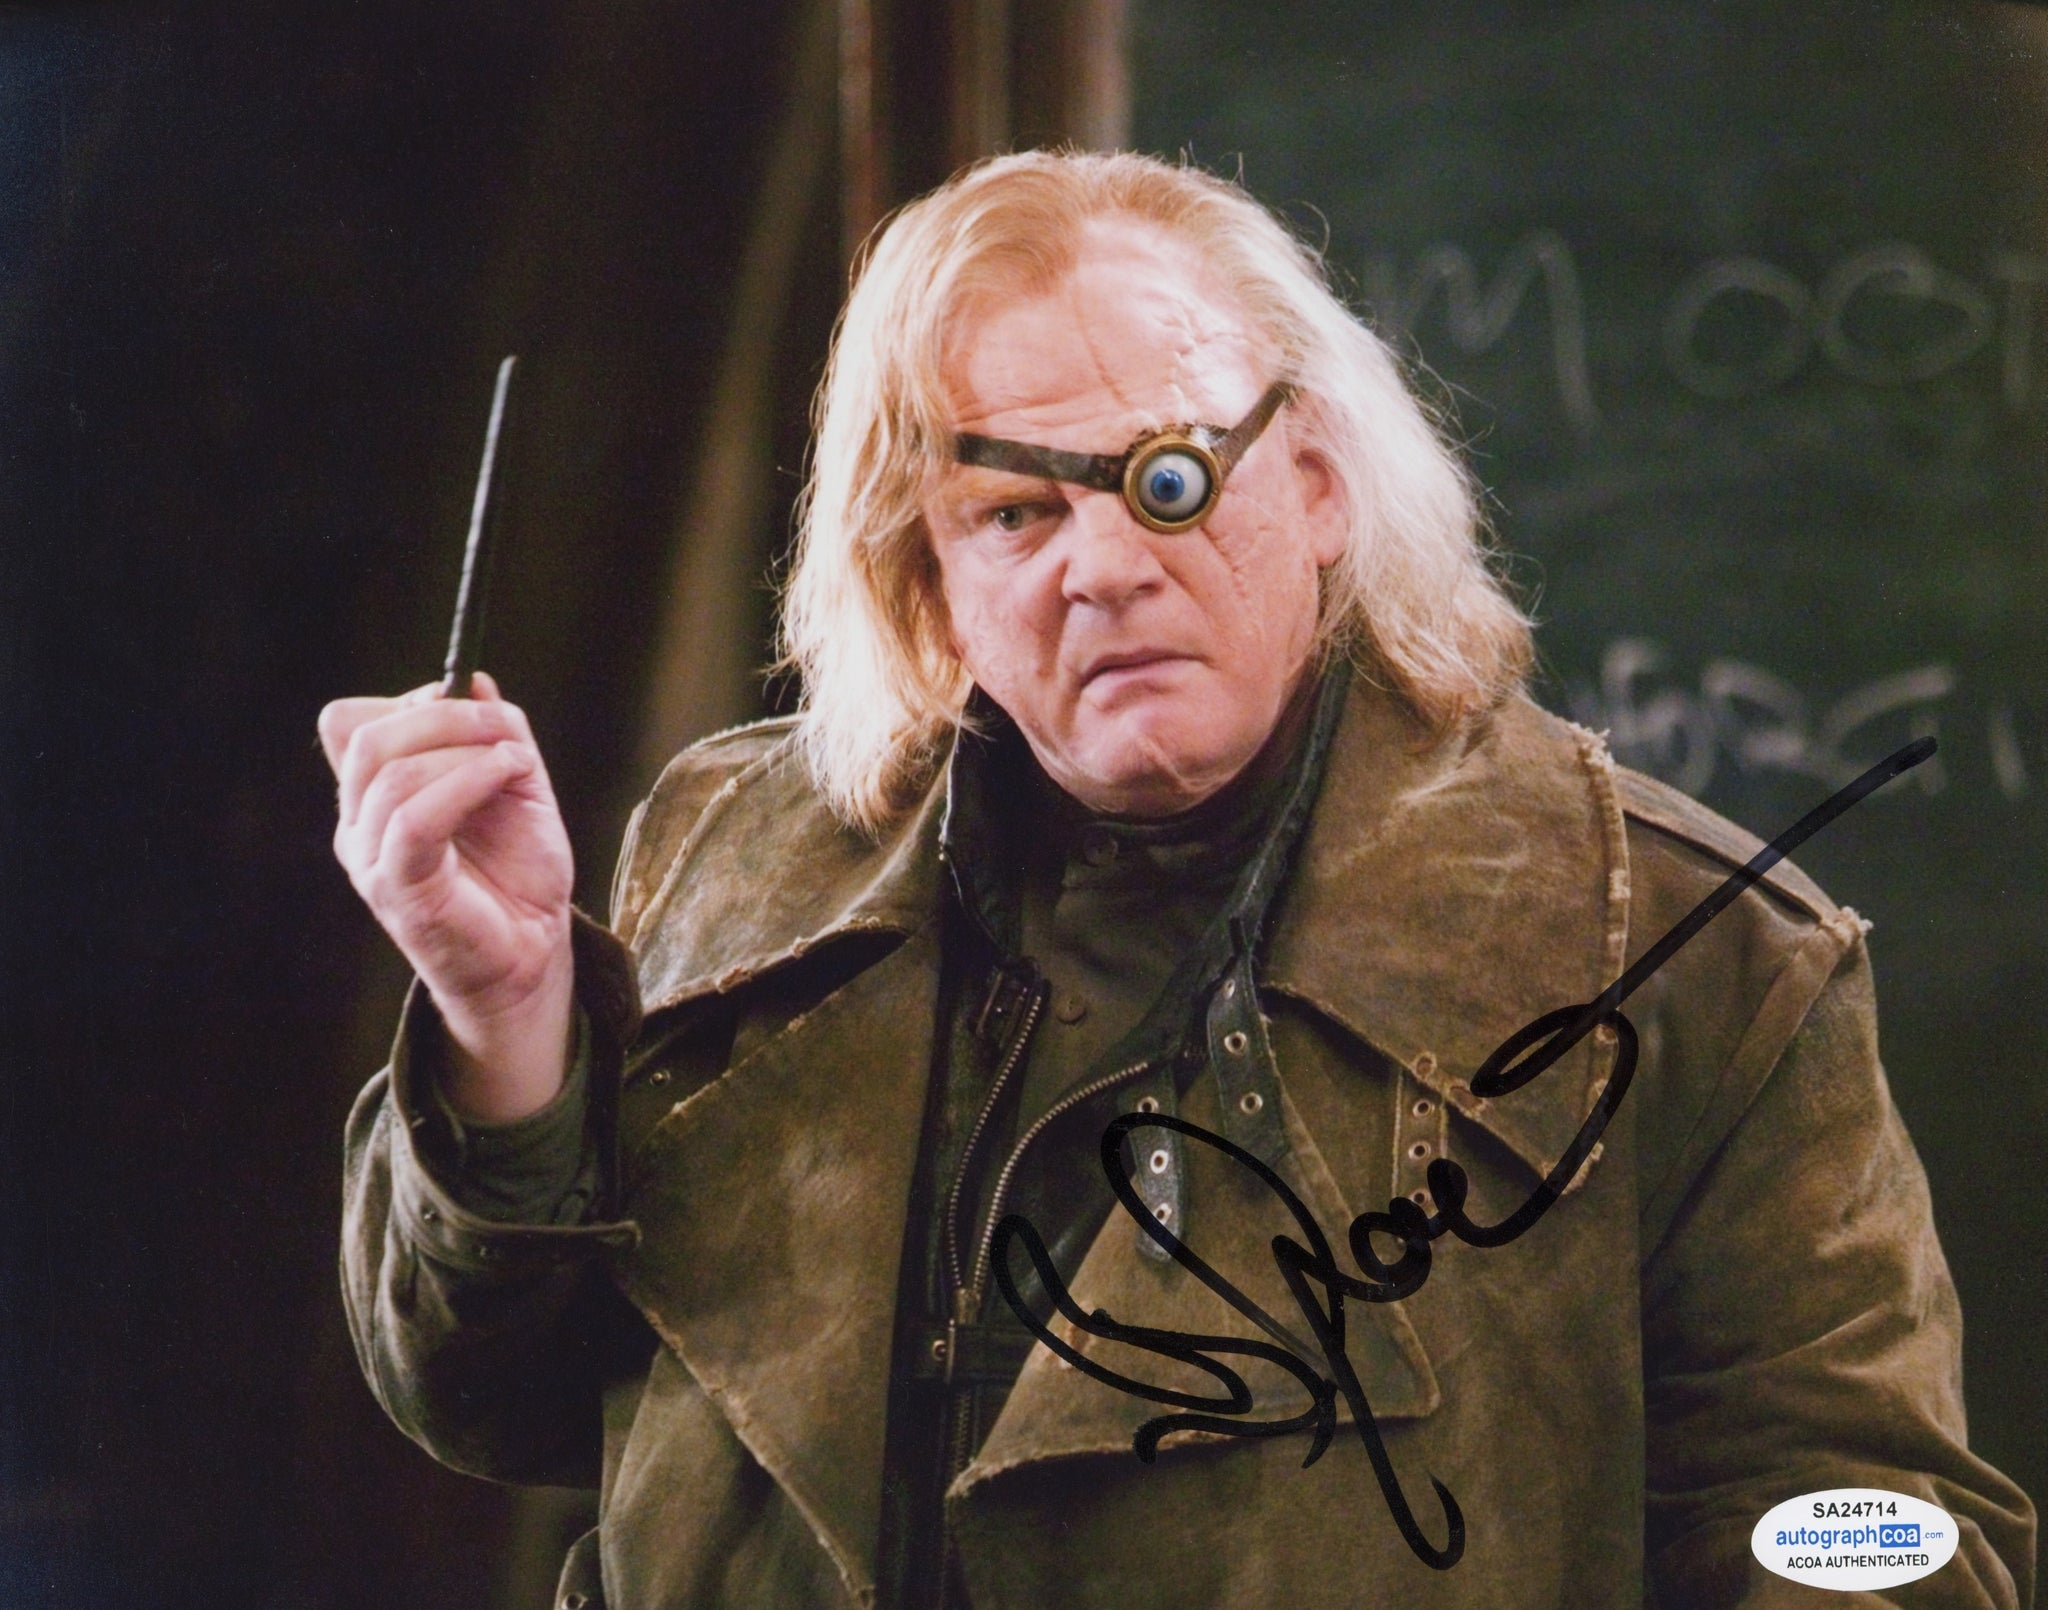 Brendan Gleeson Harry Potter Signed Autograph ACOA Photo - Outlaw Hobbies Authentic Autographs